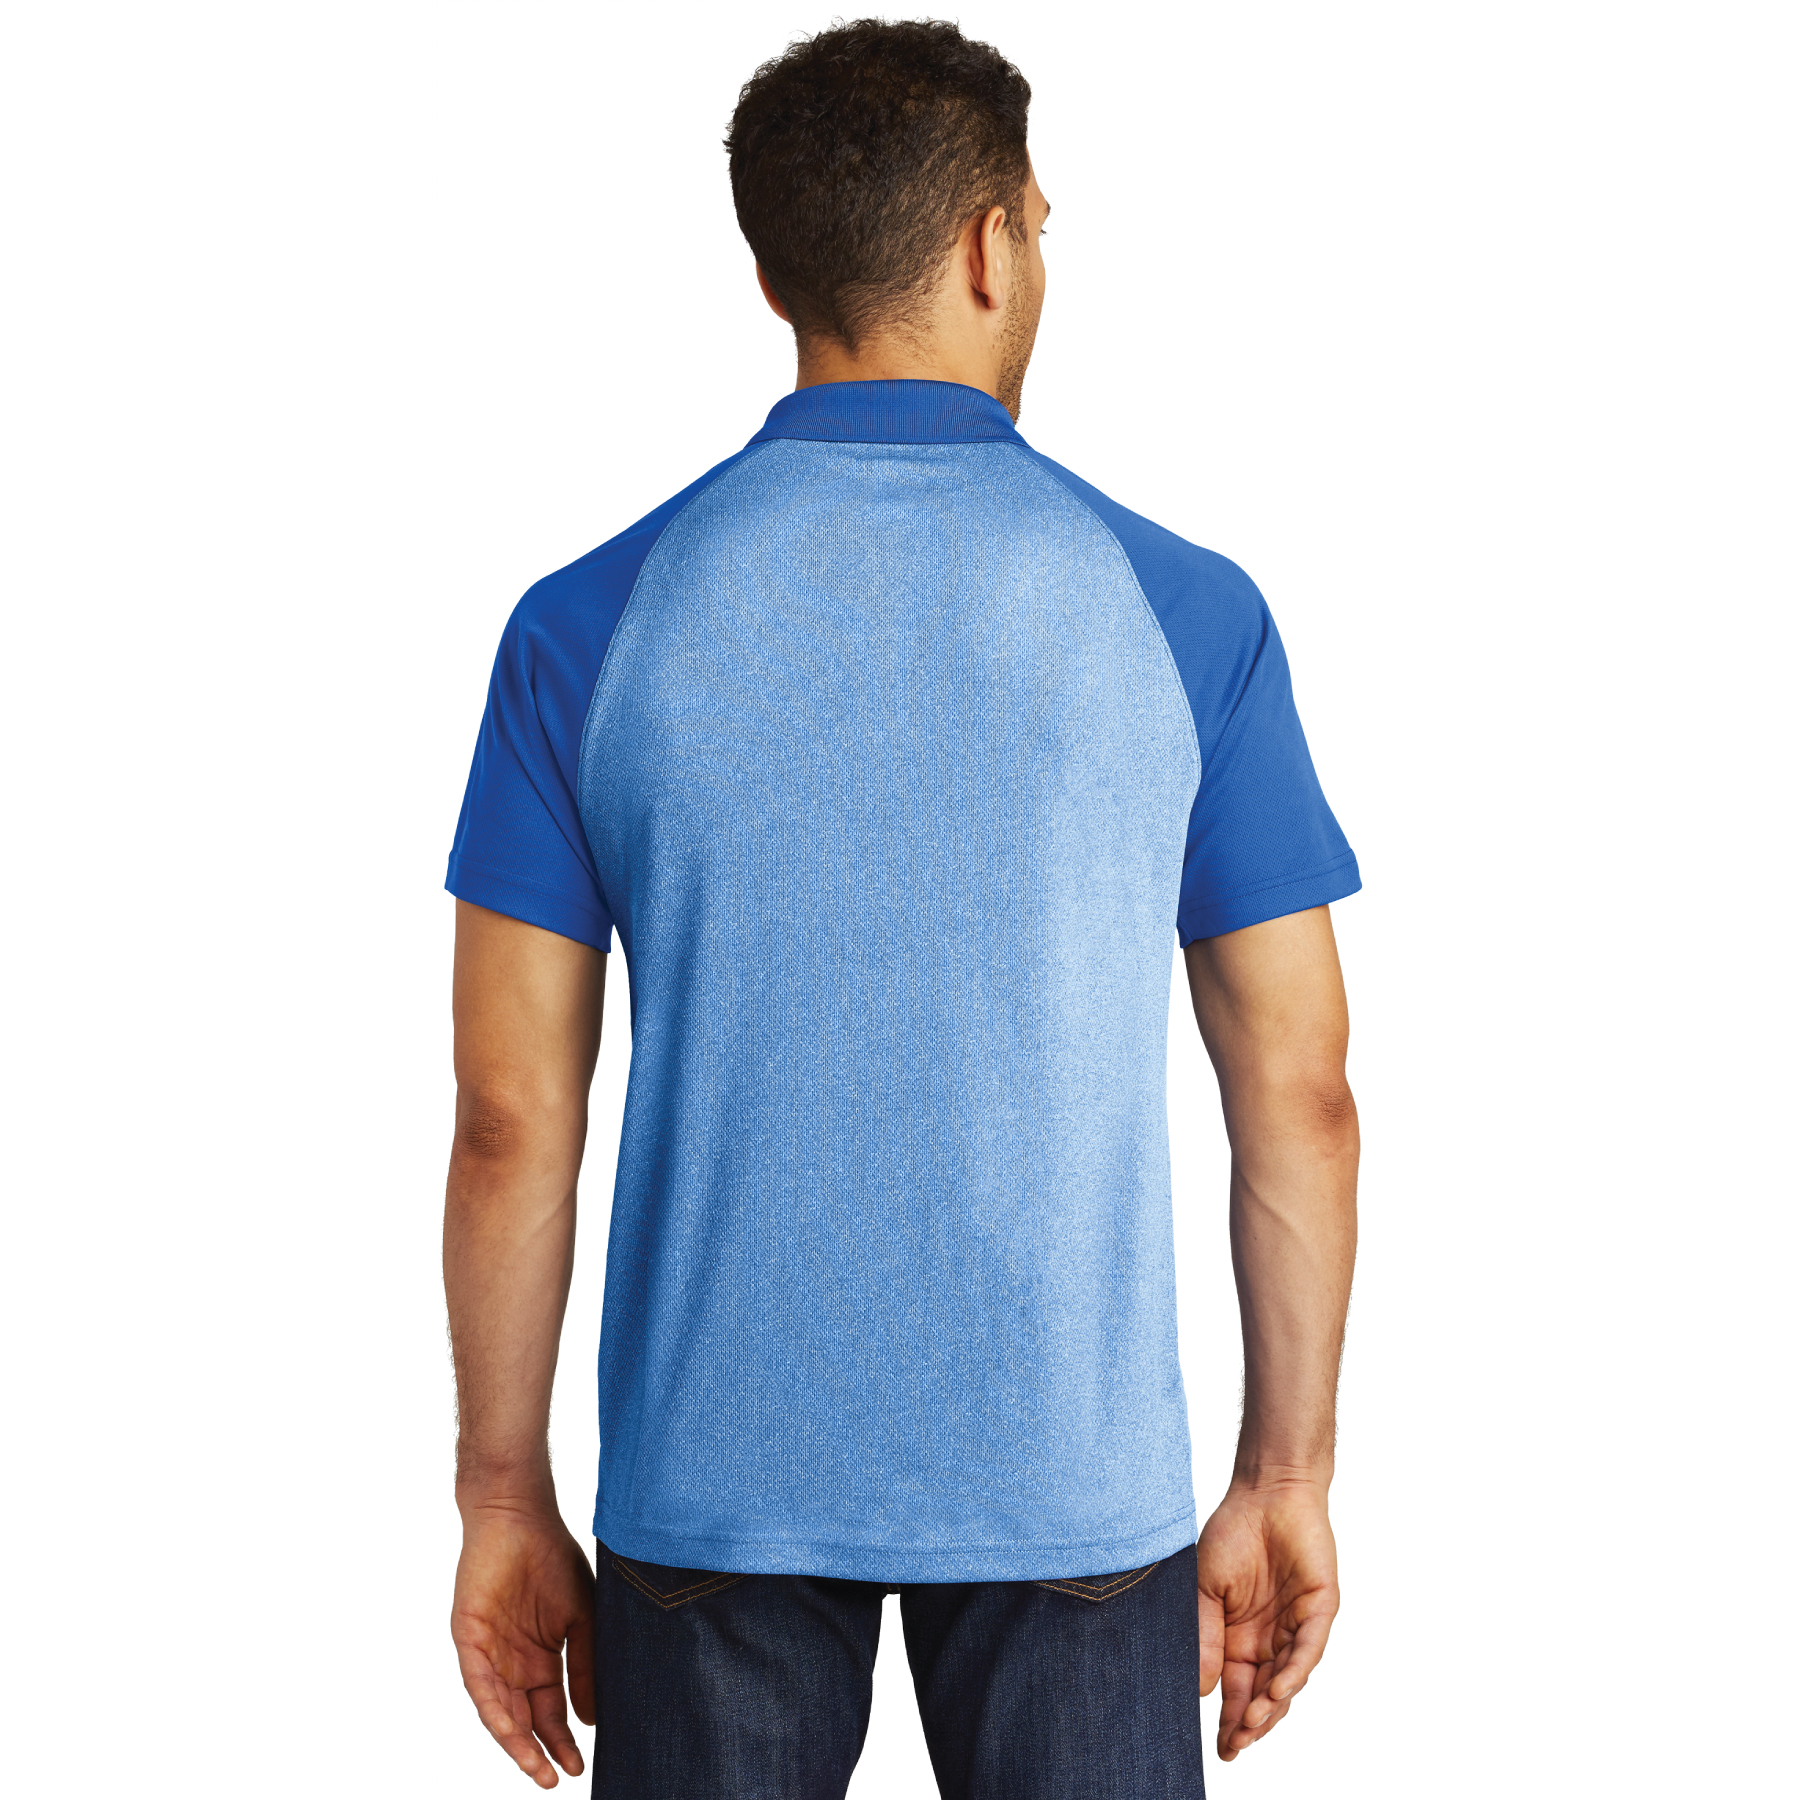 Men's PosiCharge RacerMesh Raglan Heather Block Polo - RCG4662